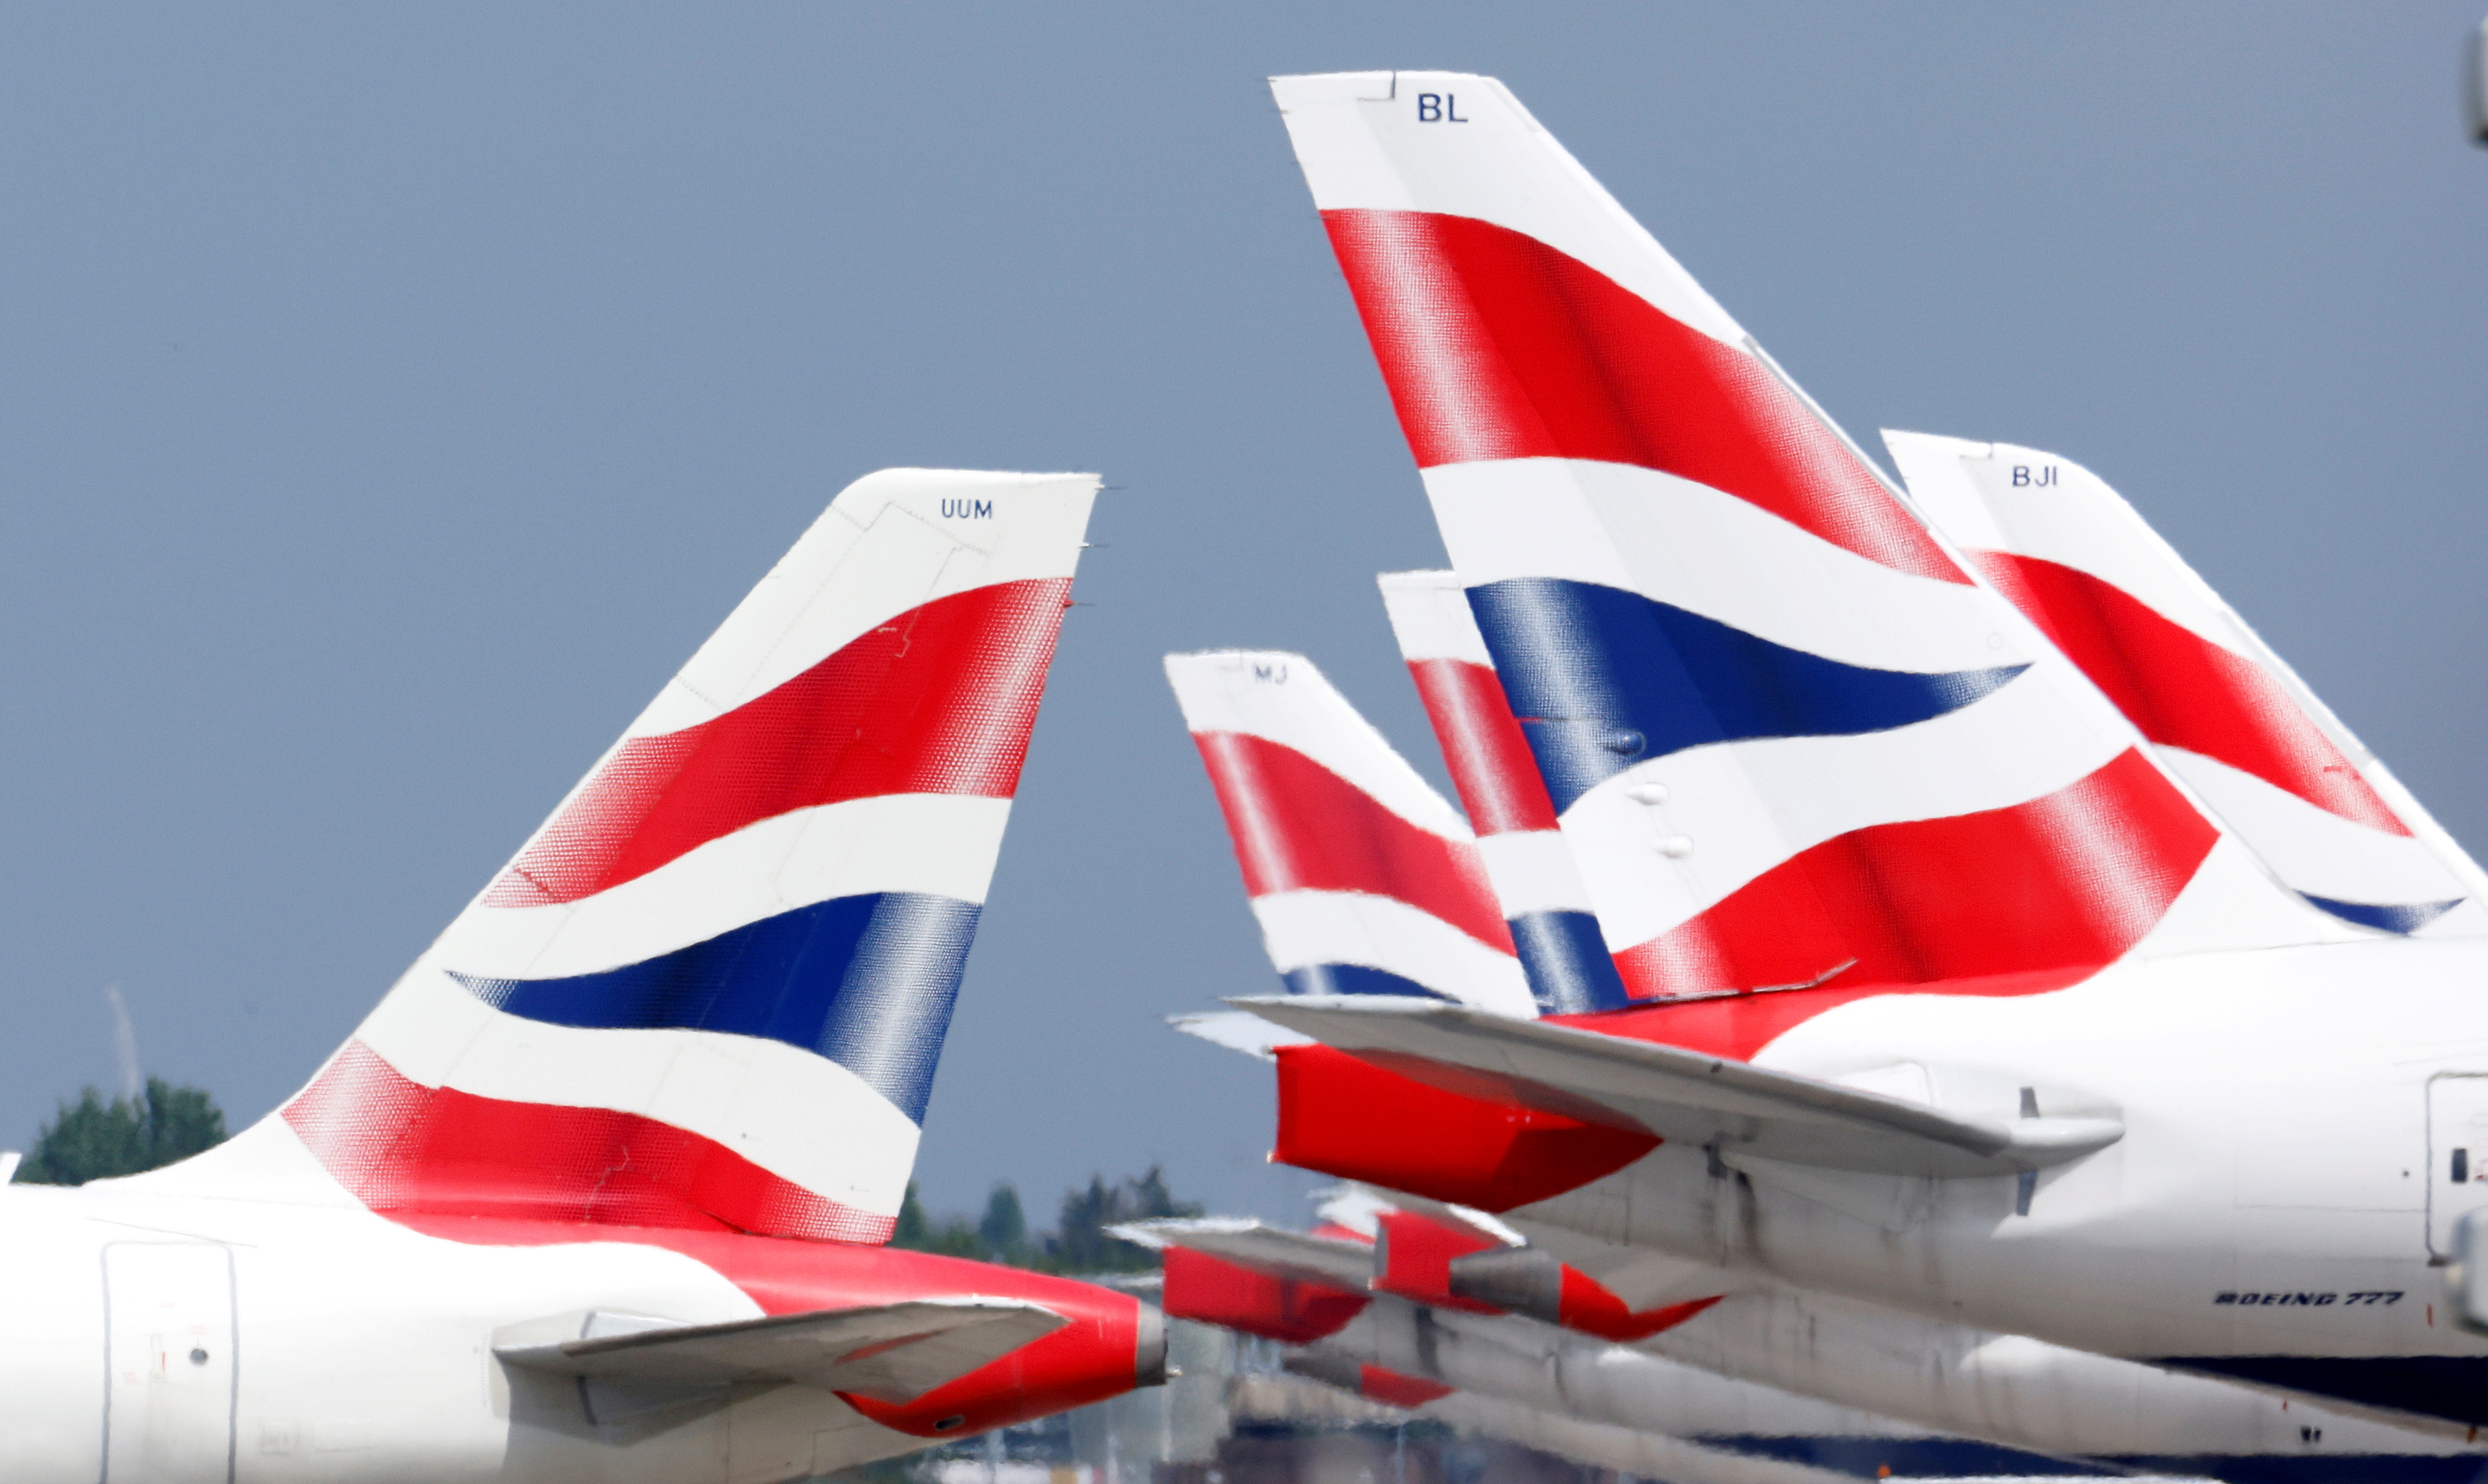 British Airways tail fins are pictured at Heathrow Airport in London, Britain, May 17, 2021. REUTERS/John Sibley//File Photo